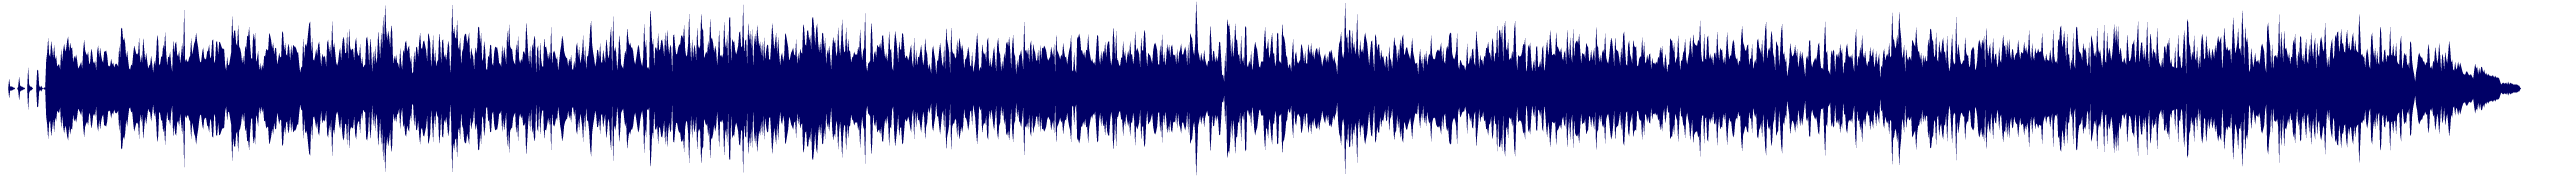 waveform of track #70859